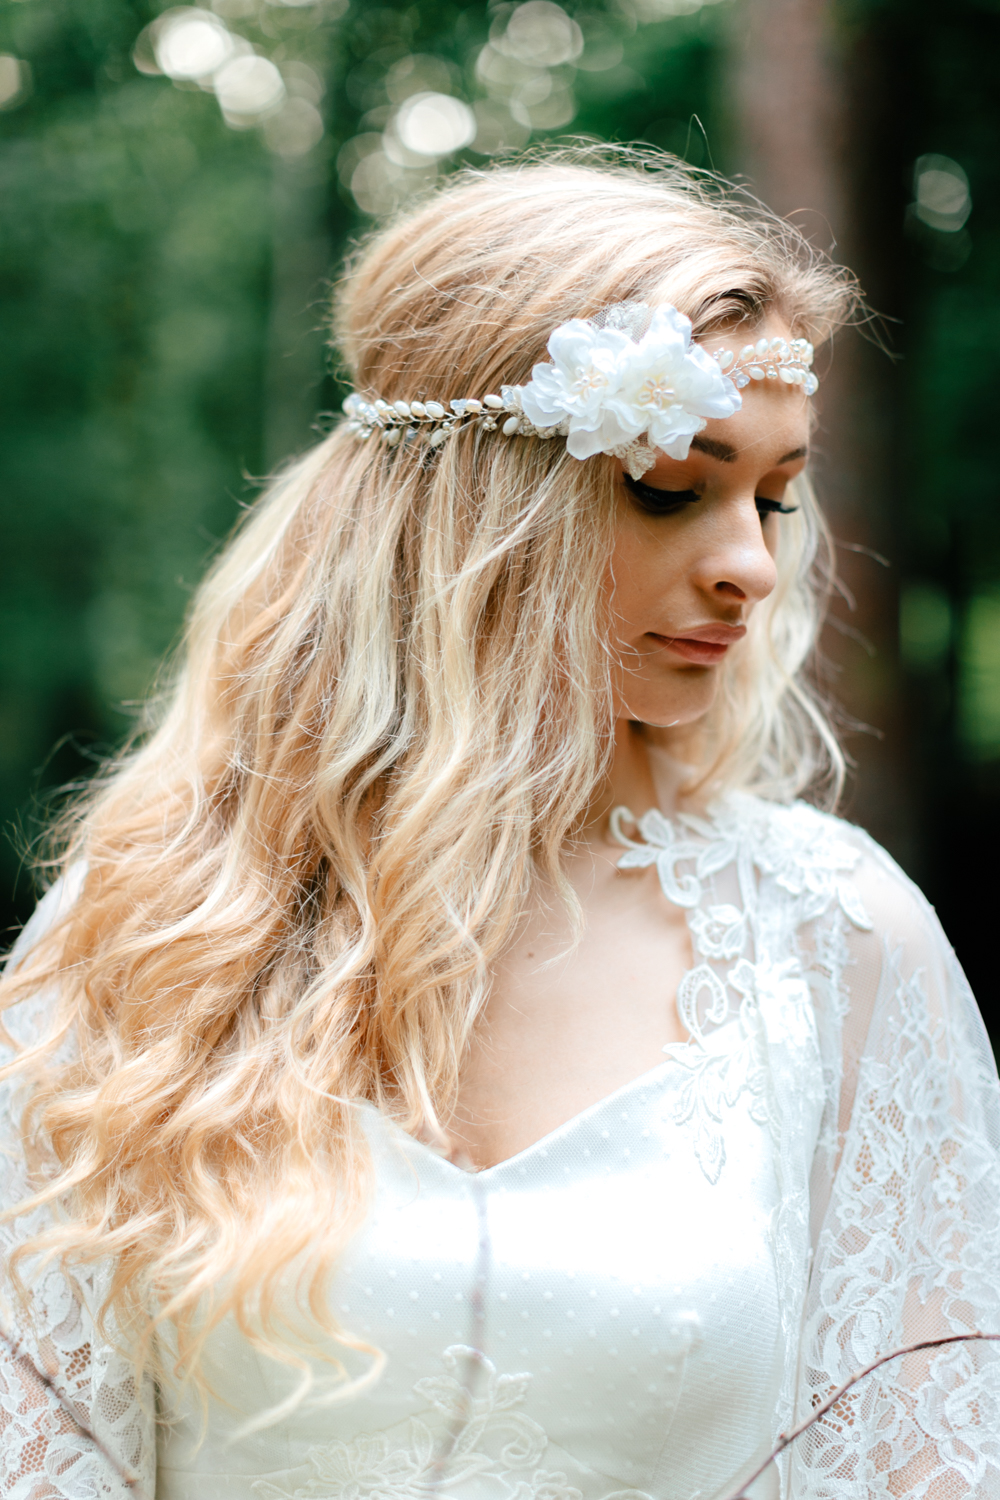 hannahk-photography-bohemian-bridal-inspiration-shoot-12